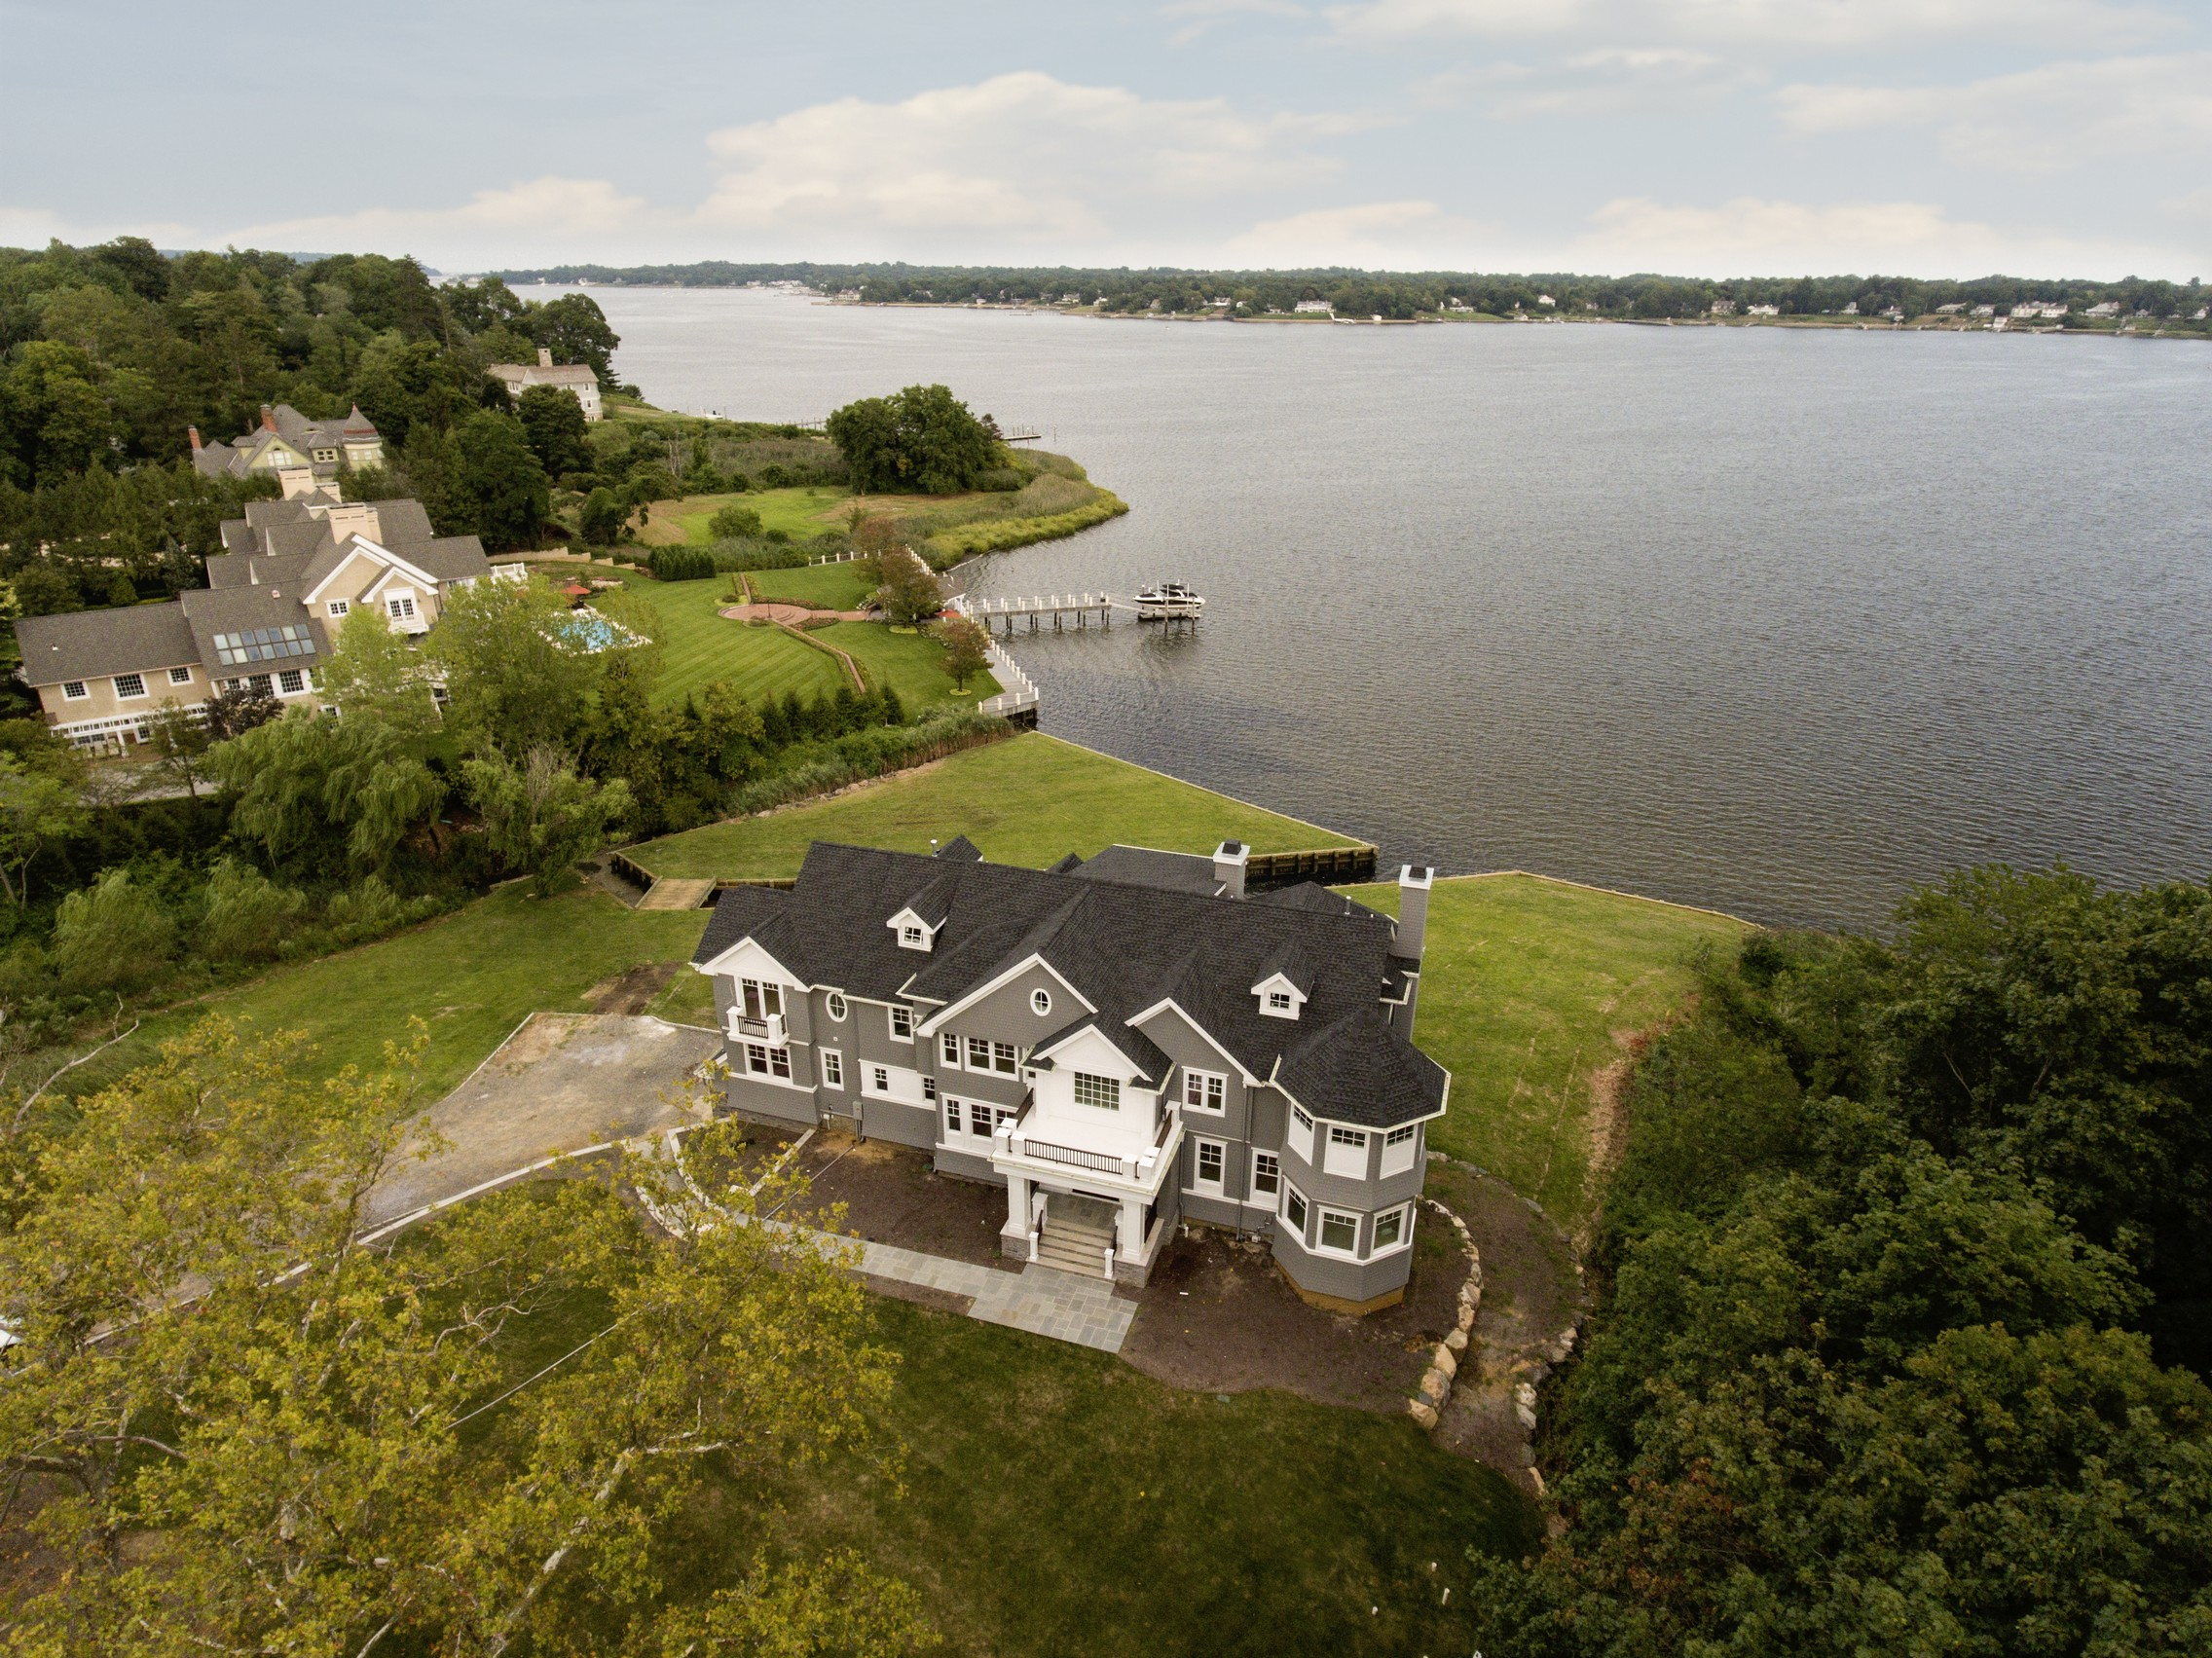 Maison unifamiliale pour l Vente à Middletown NJ - Waterfront New Construction 444 Navesink River Rd. Middletown, New Jersey, 07748 États-Unis